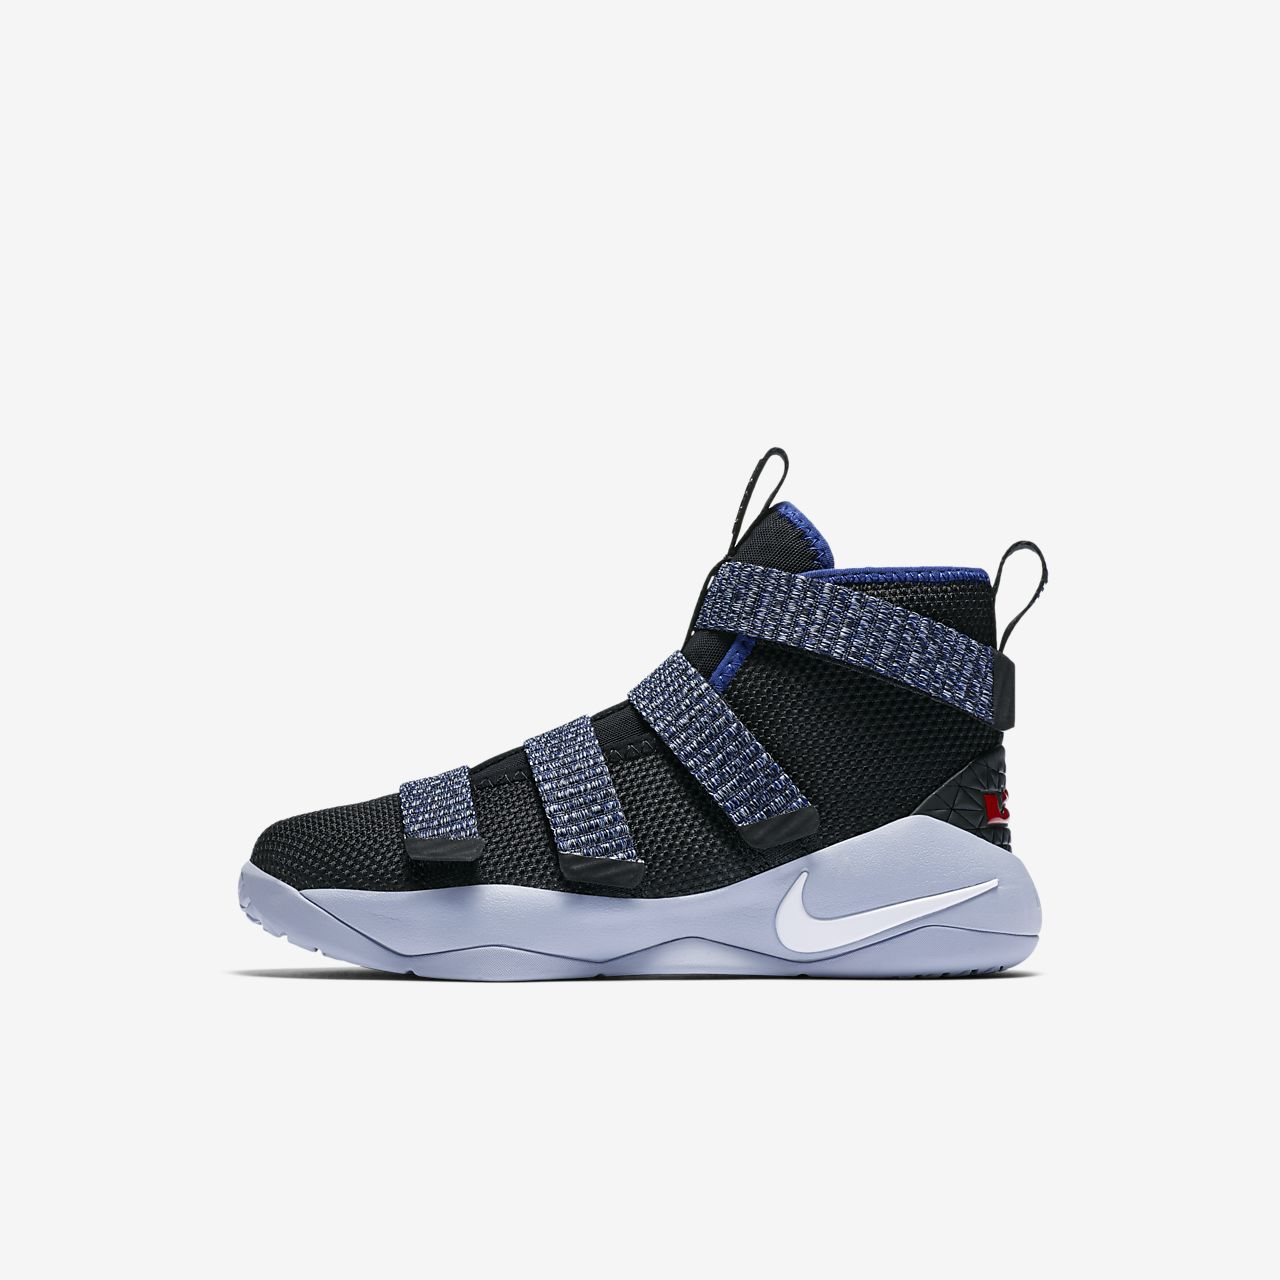 ... LeBron Soldier XI Little Kids' Shoe